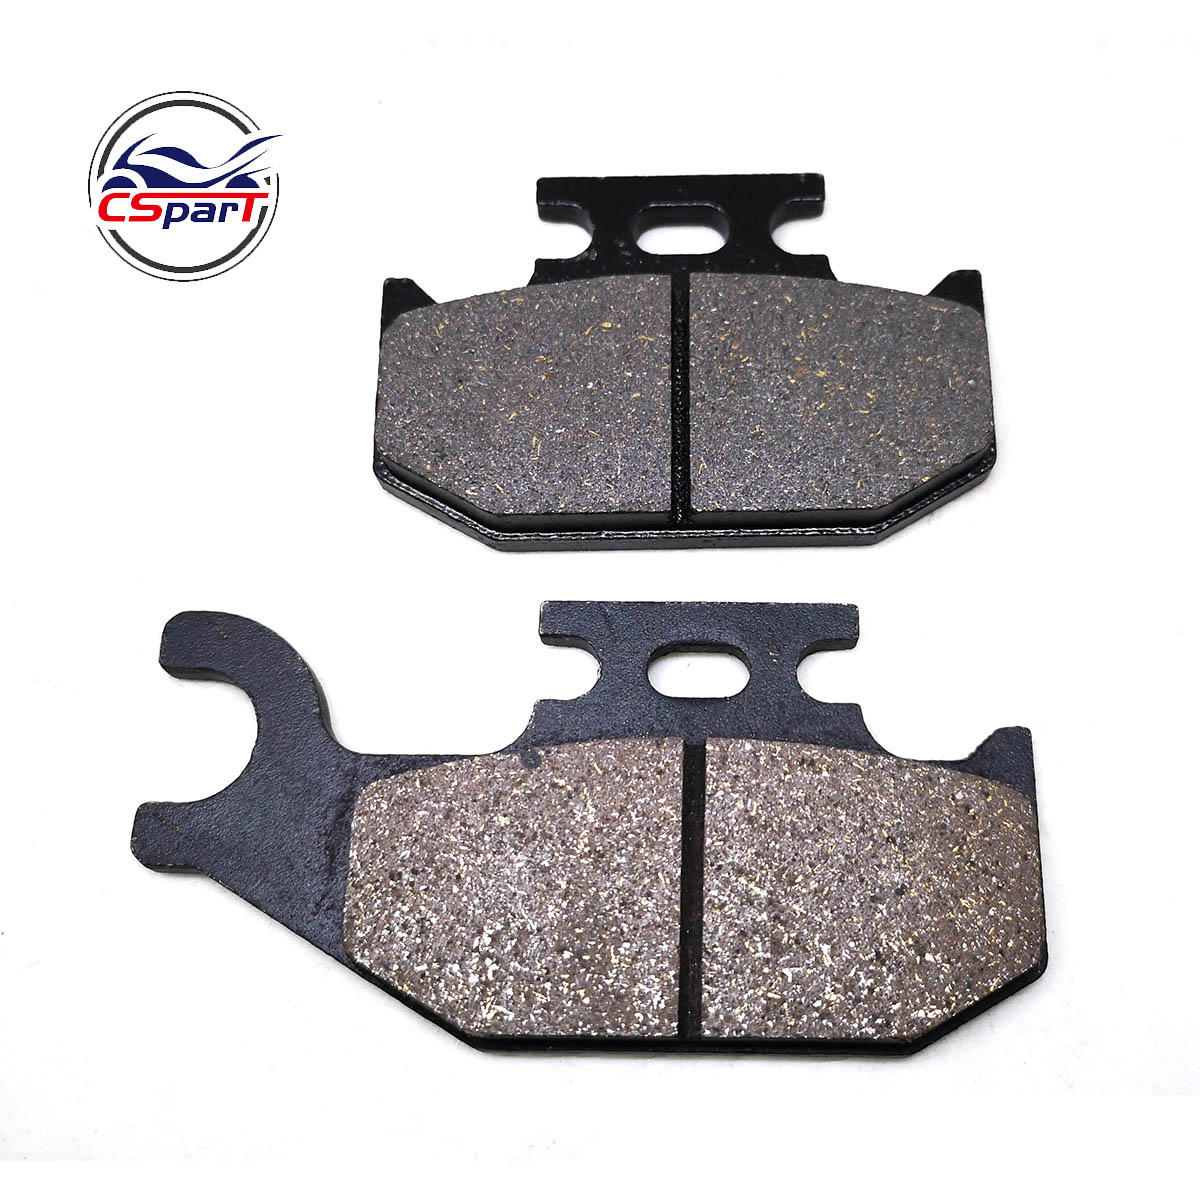 Rear Brake Pad Pads For HS500 HS700 <font><b>Hisun</b></font> <font><b>500</b></font> 700 <font><b>UTV</b></font> ATV Parts image